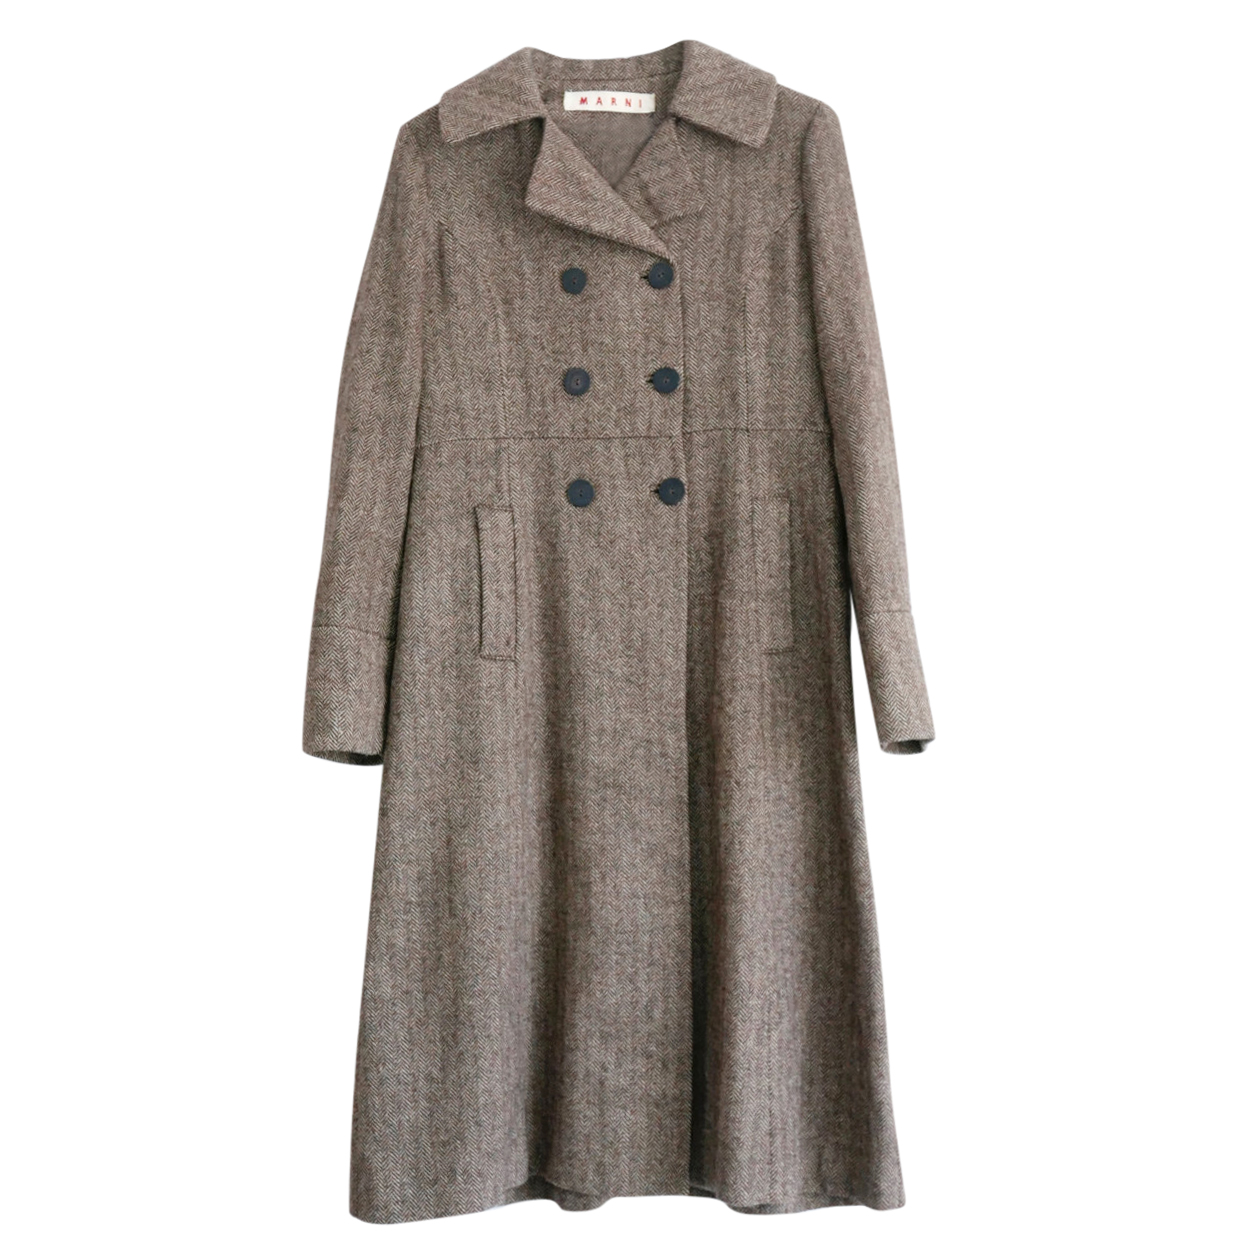 Marni brown herringbone wool long coat